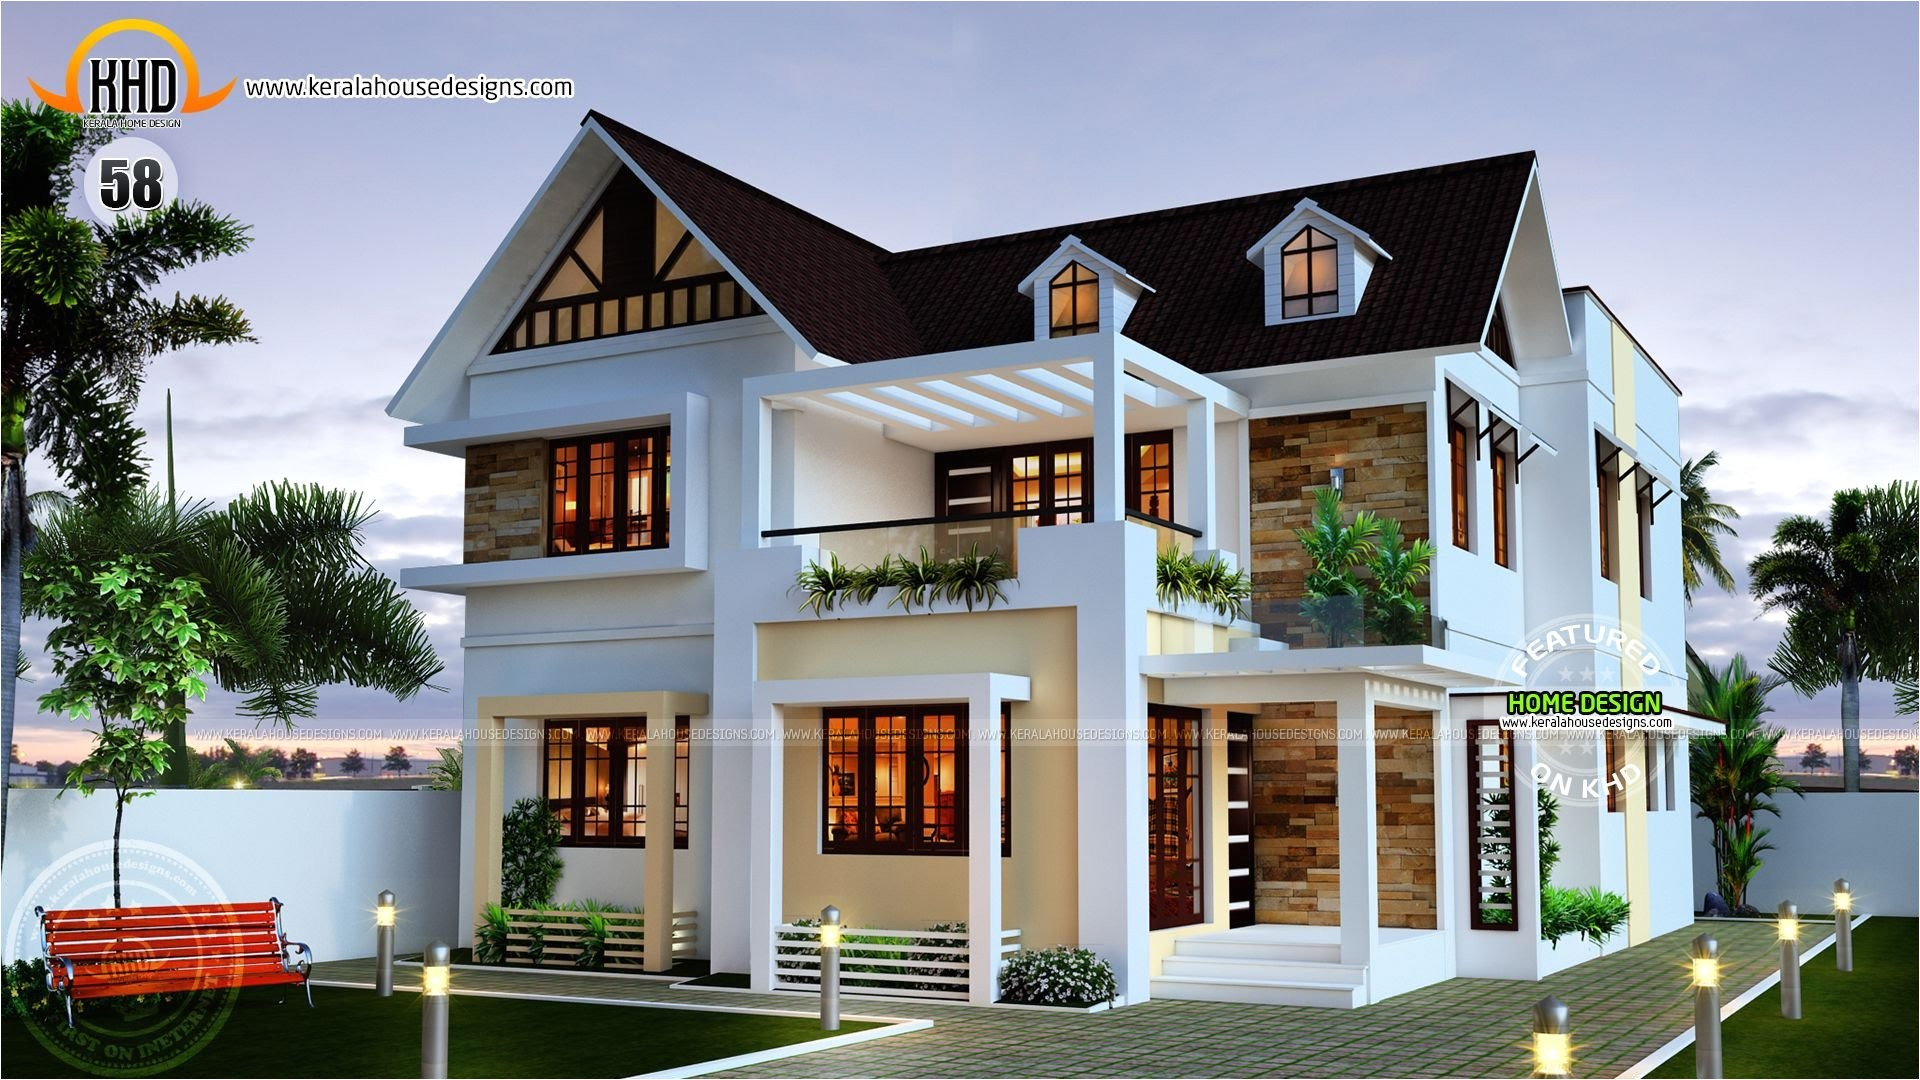 nice new home plans for 2015 11 kerala house design collection 2015